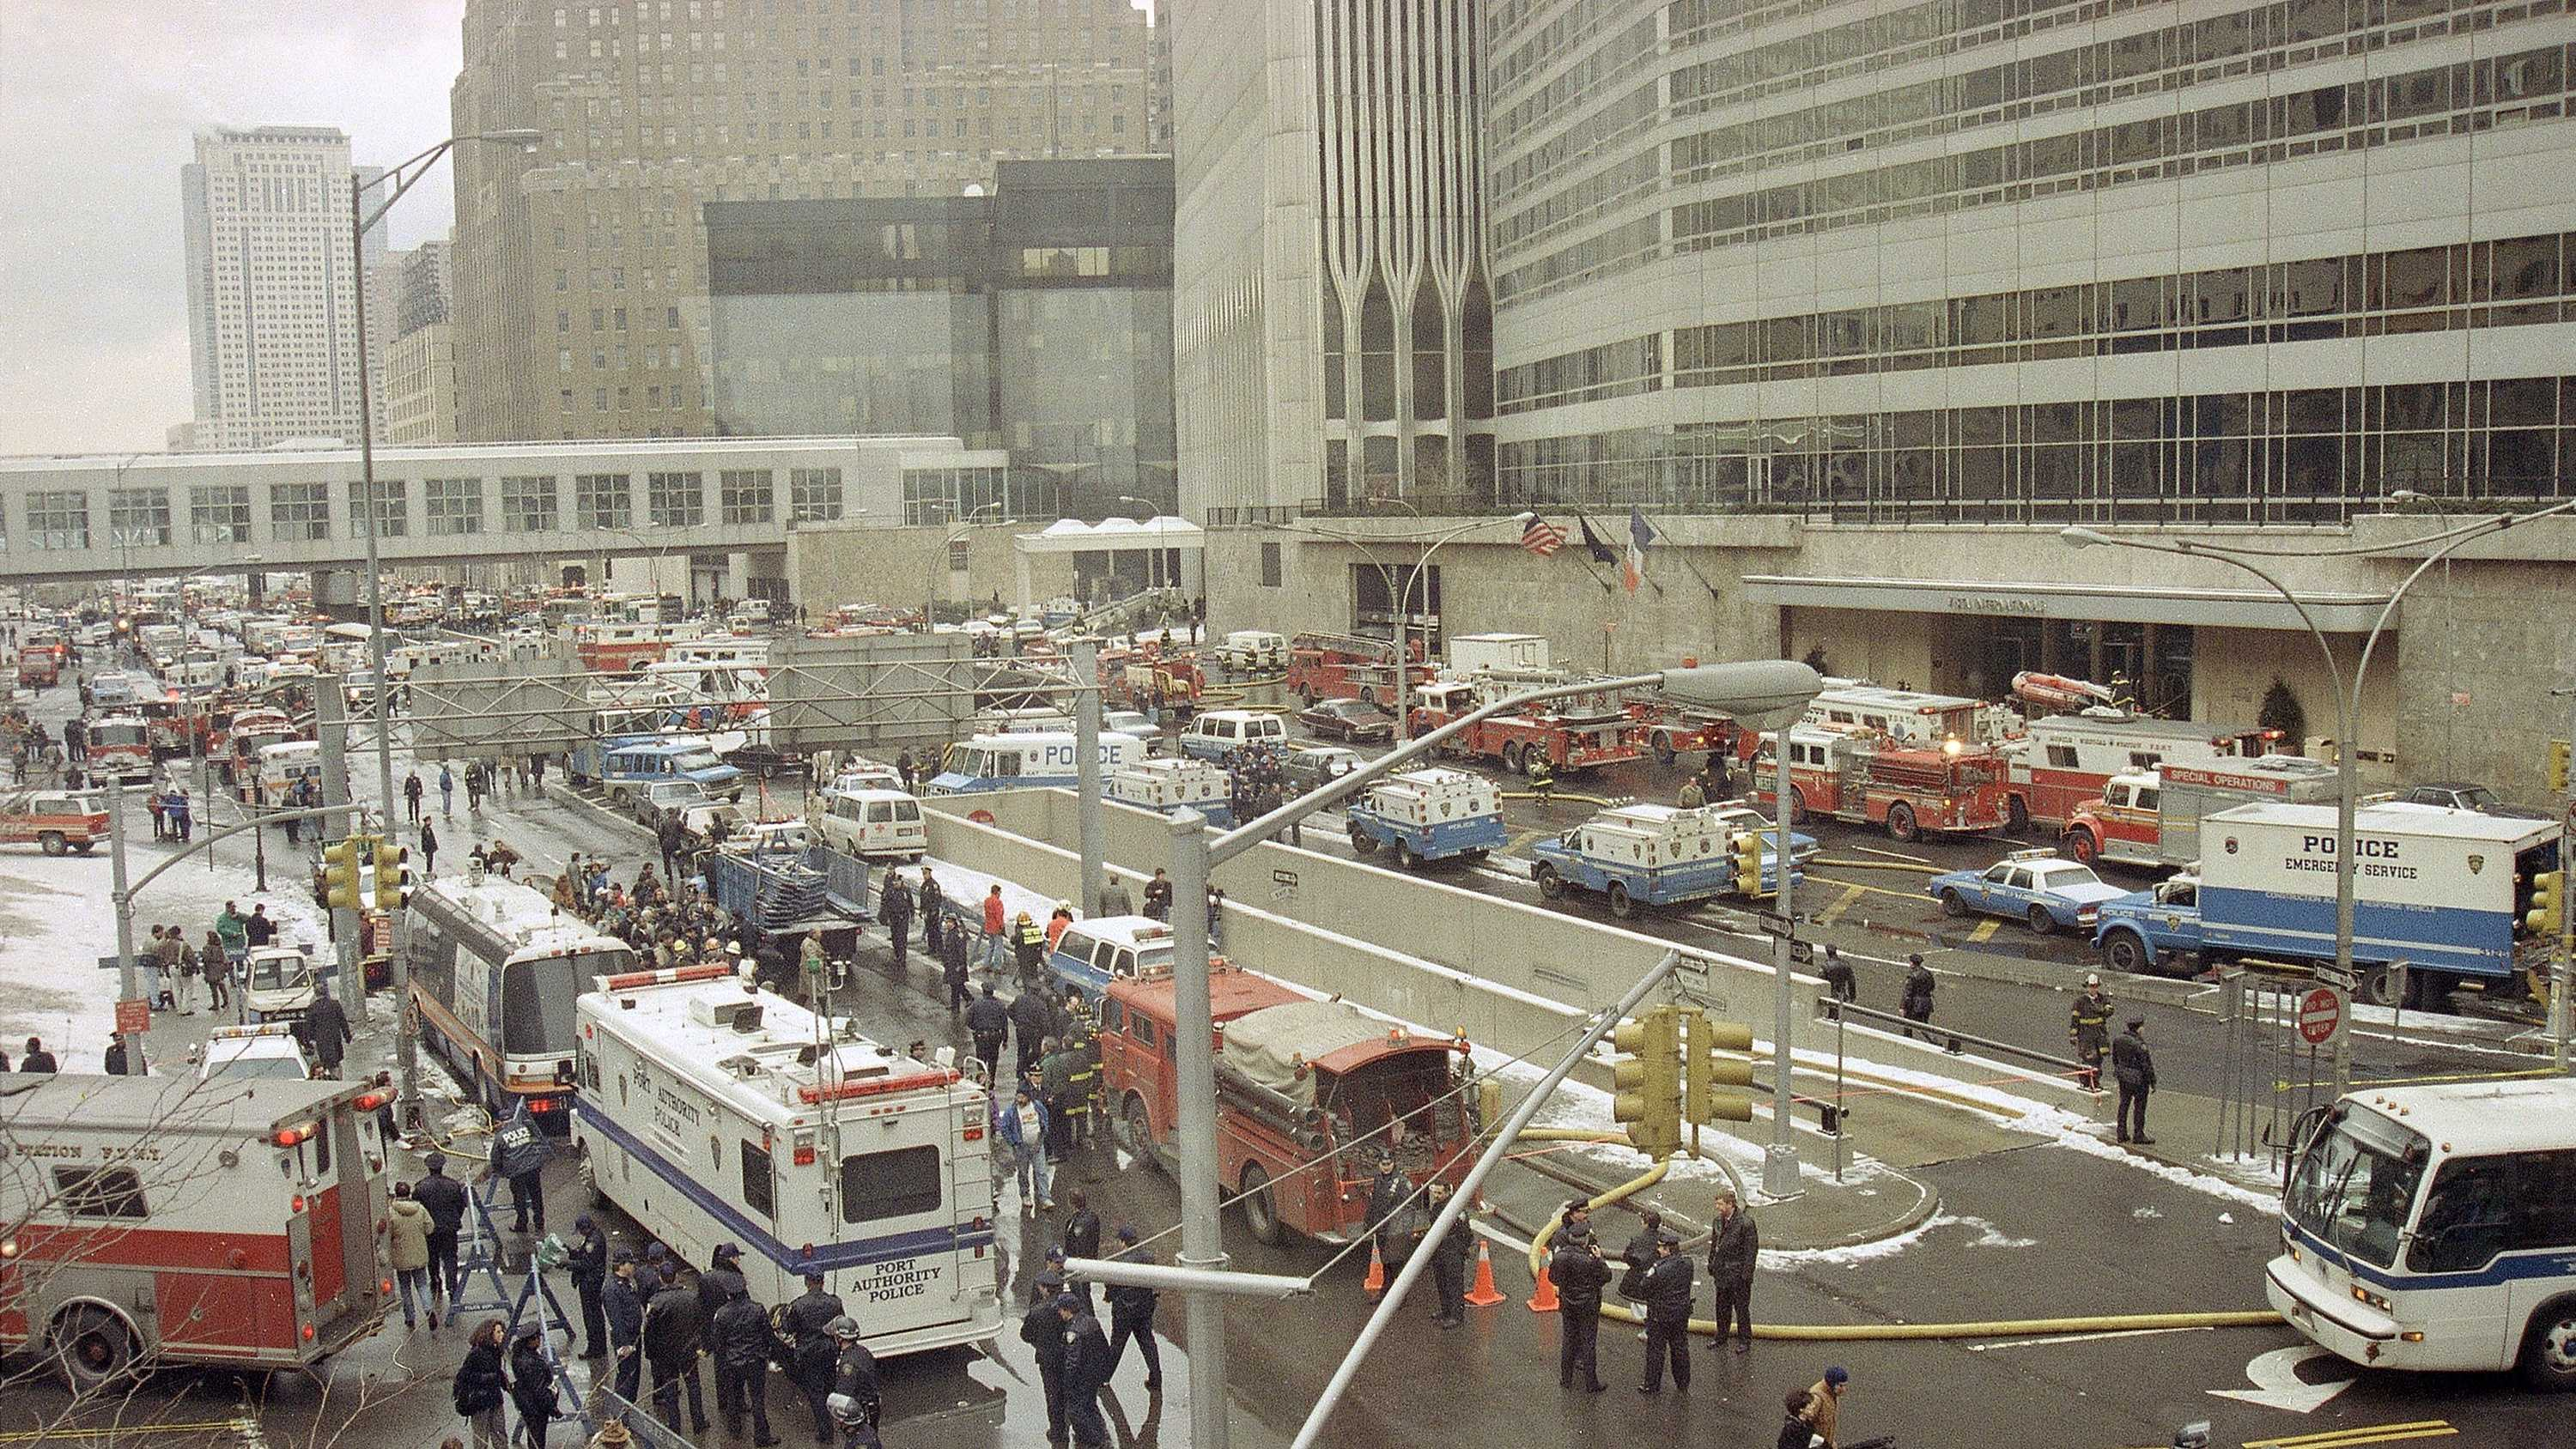 Emergency vehicles and personnel fill New York's West Street following an underground explosion that rocked the World Trade Center at 12:18 pm, Feb. 26, 1993. At least five people were killed and 300 injured in the blast that forced thousands to evacuate the 110-story twin towers.